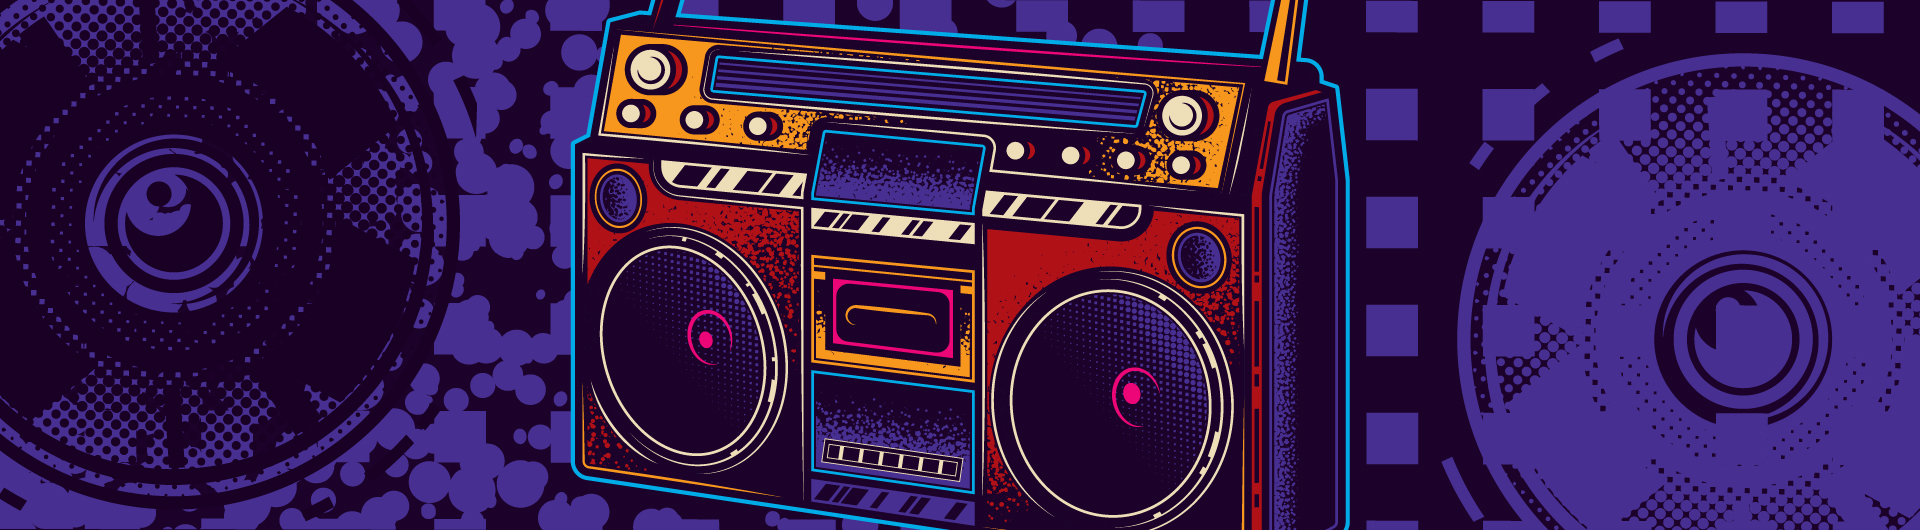 Where Did We Sit on the Bus boom box